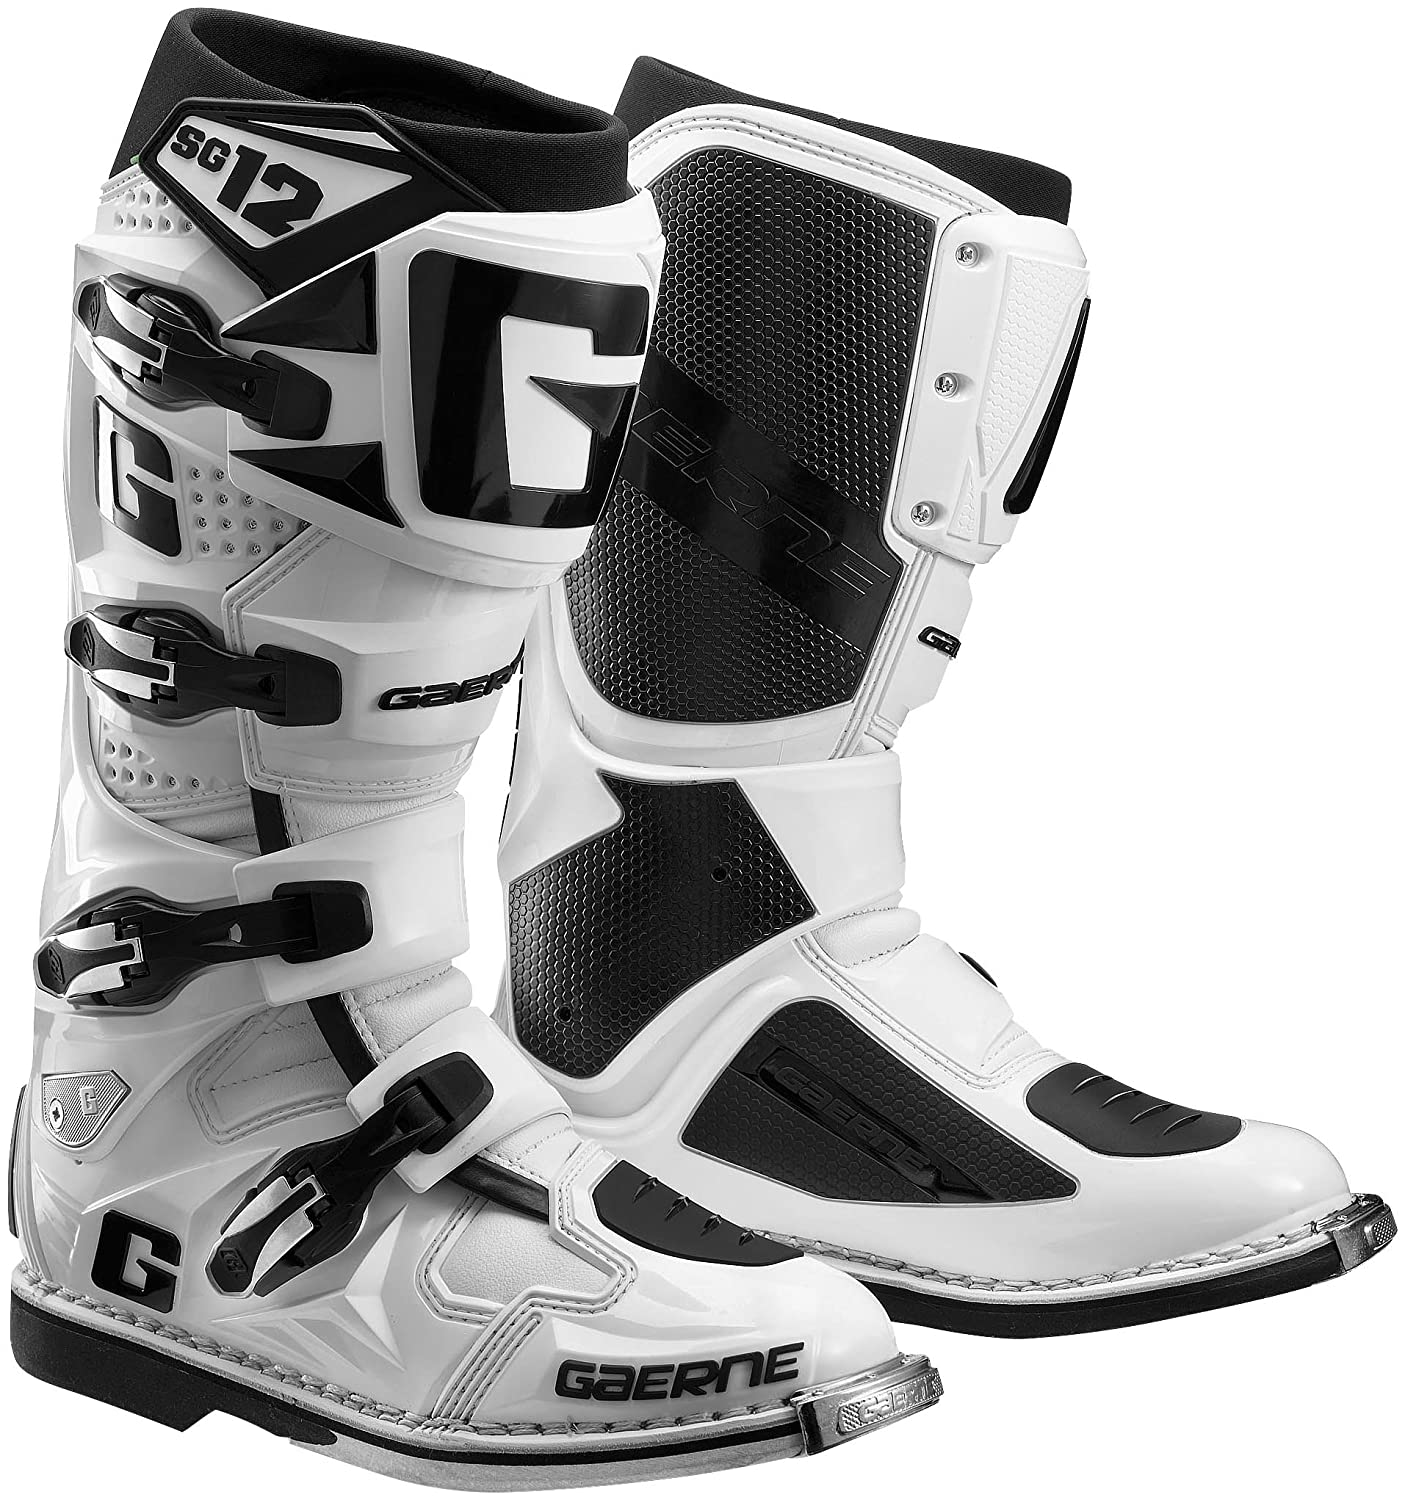 Gaerne SG12 Adult Off-Road Motorcycle Boots, White, 11 B00M9IFT9I Parent